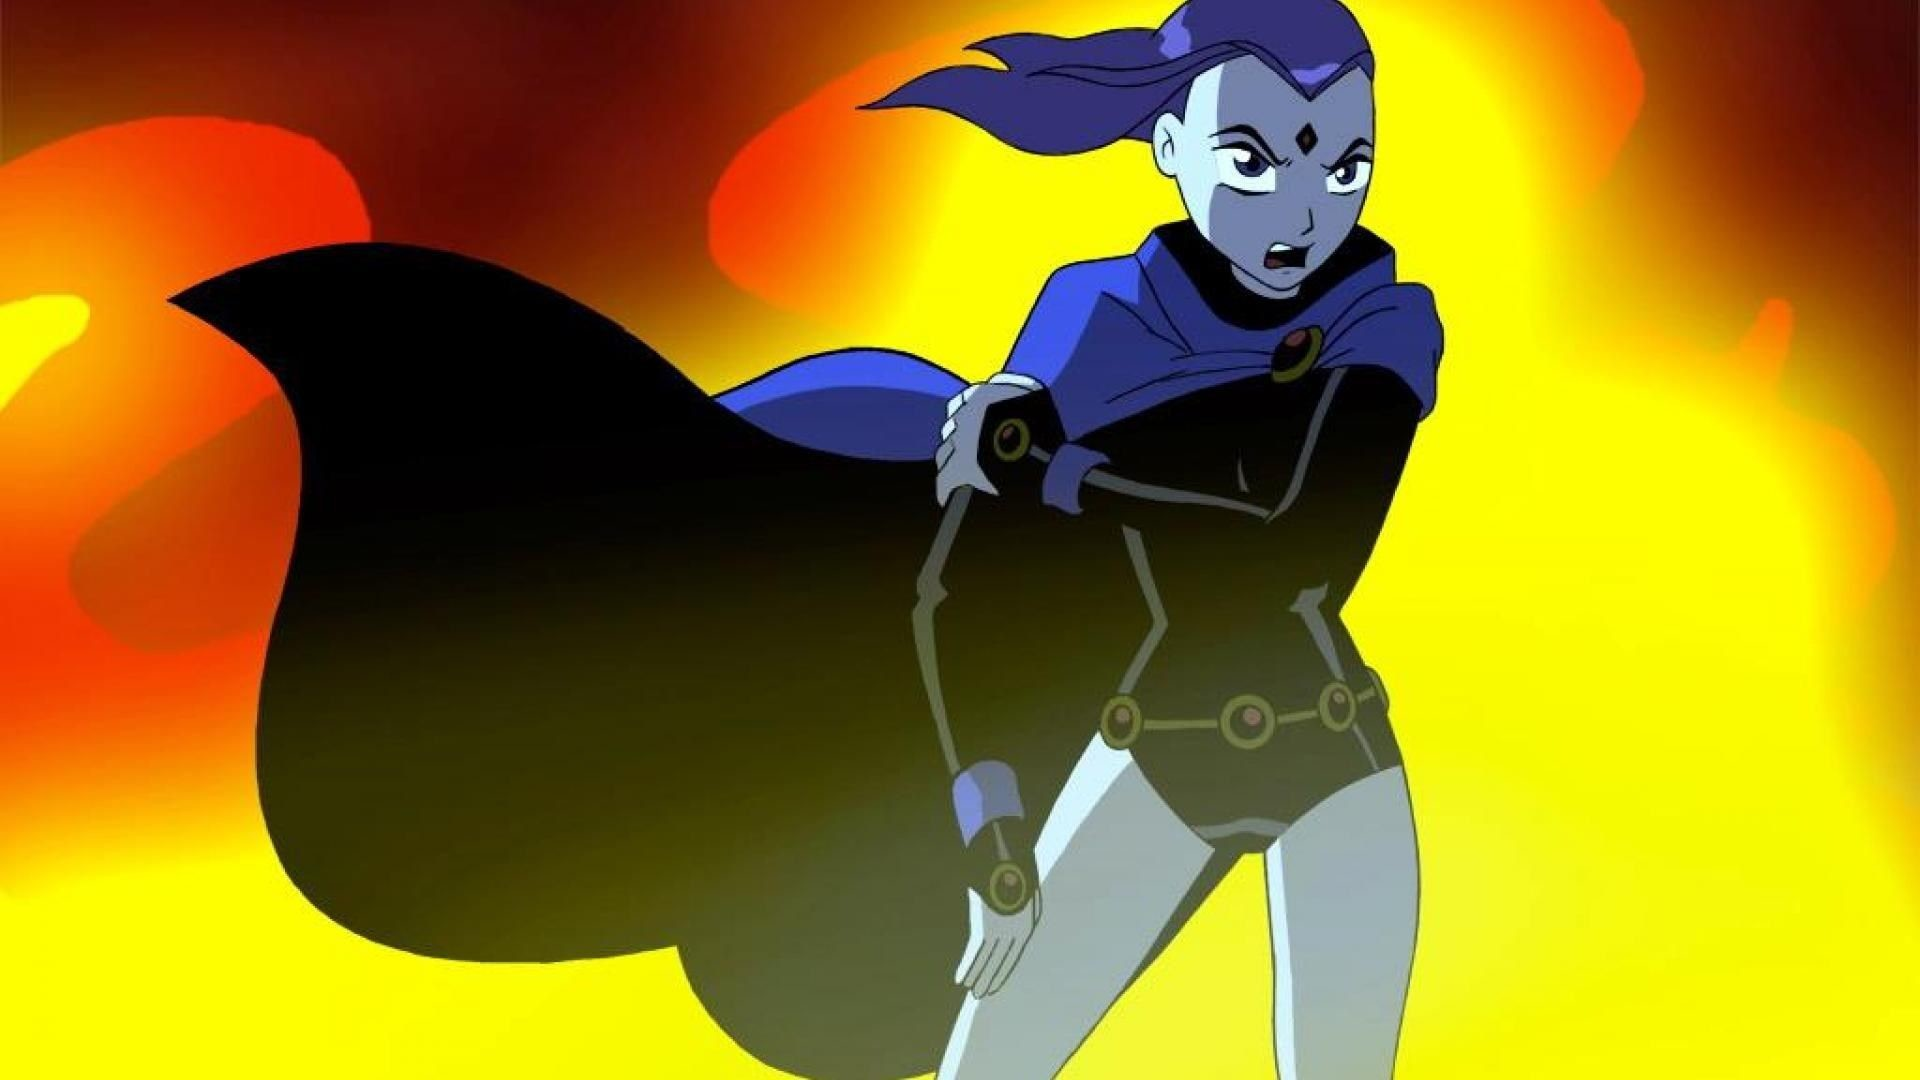 Res: 1920x1080, HD Wallpaper and background photos of Raven for fans of Teen Titans images.